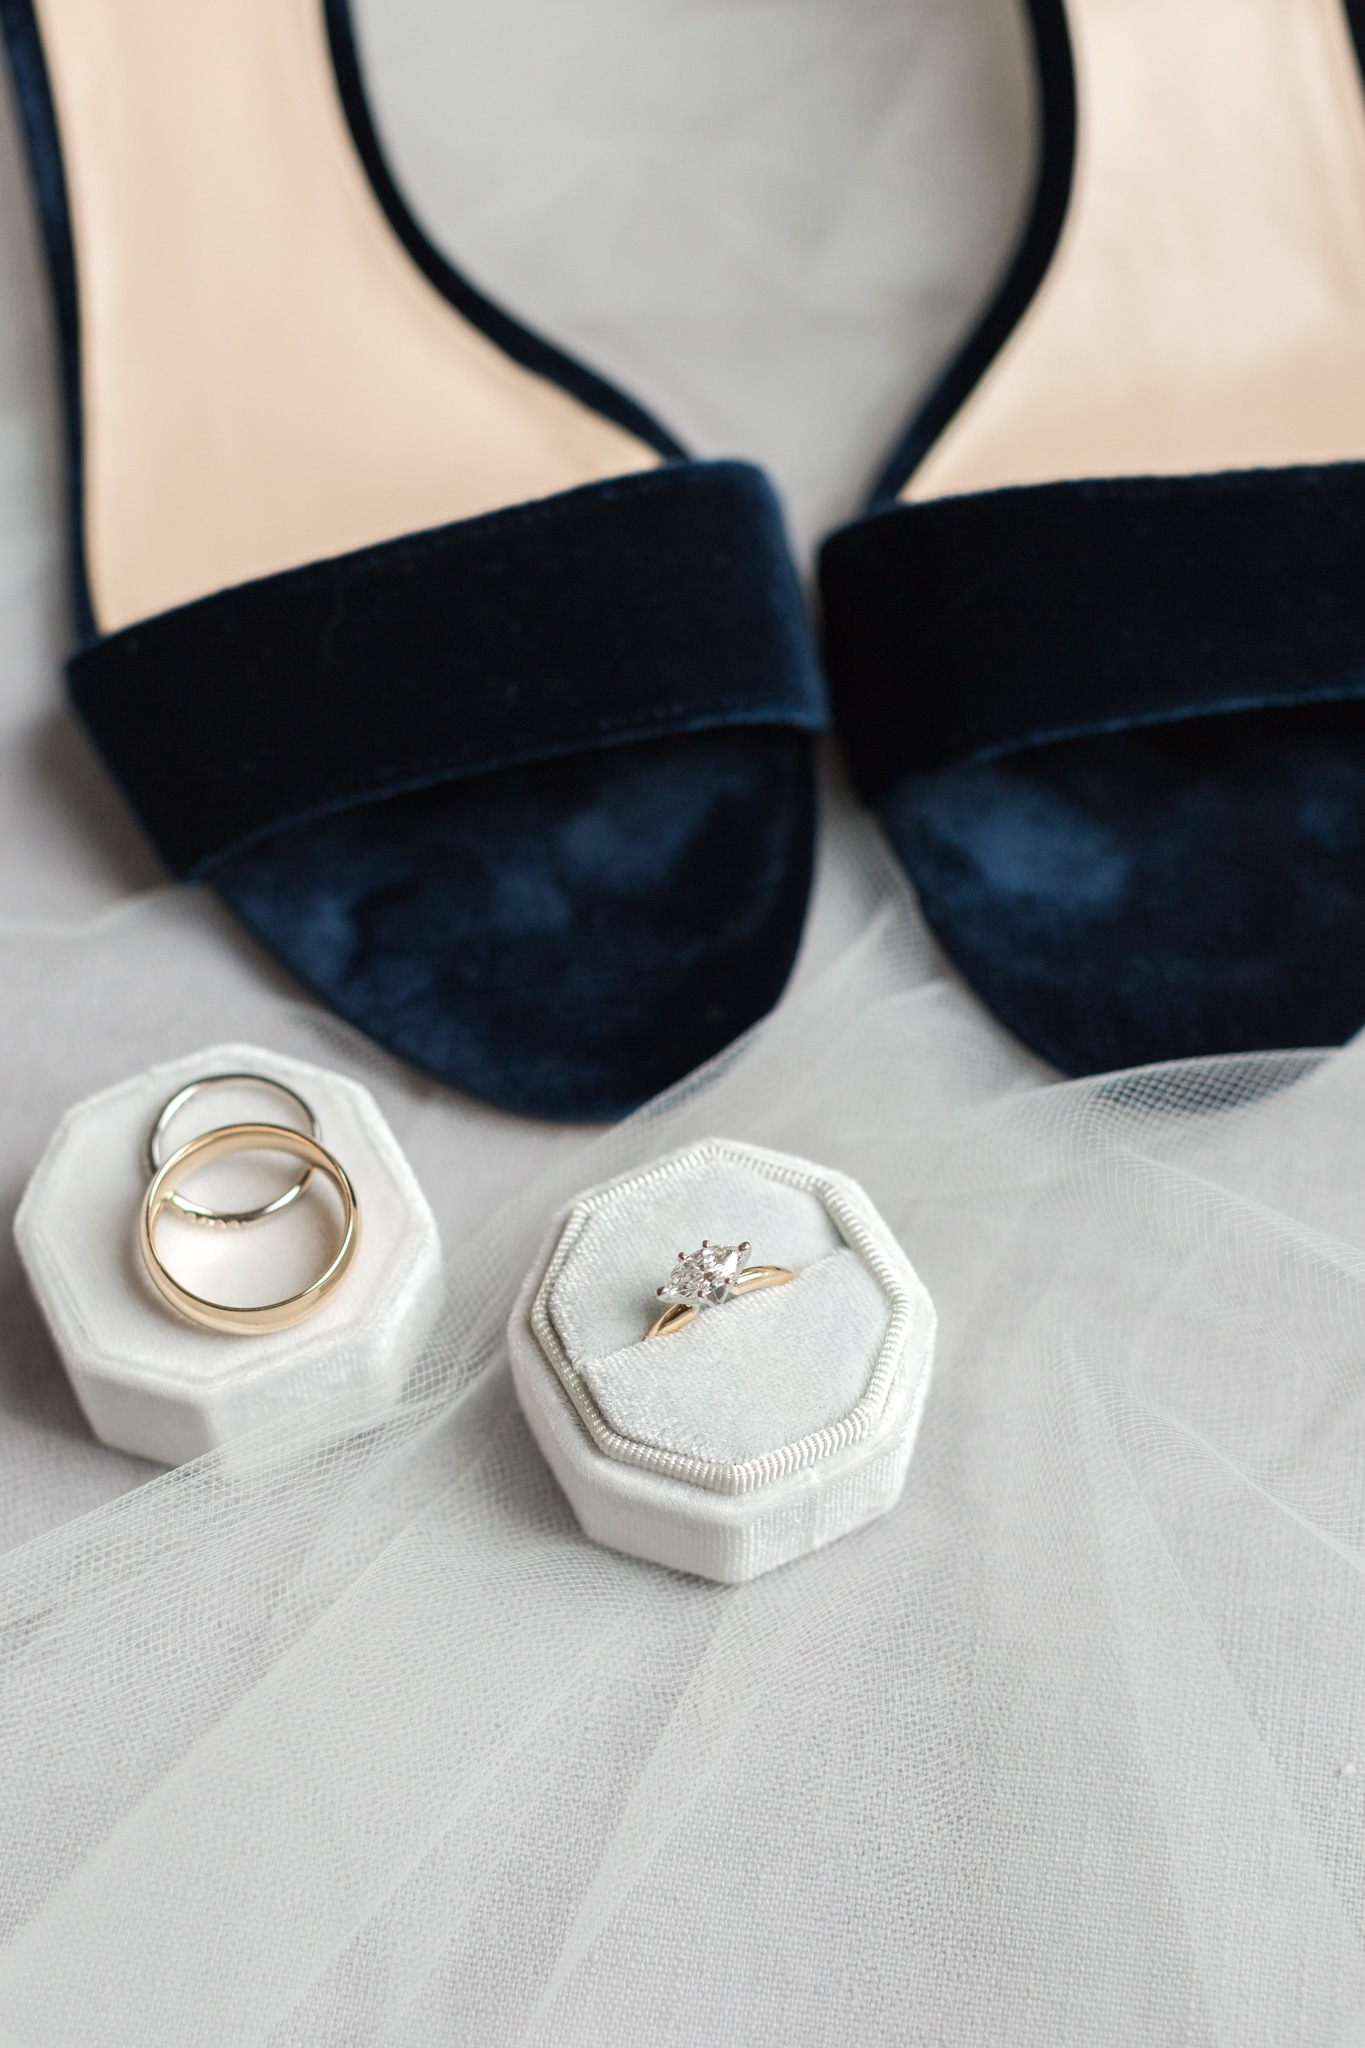 Bridal ring detail shot with navy blue velvet shoes captured by Samantha Laffoon Photography